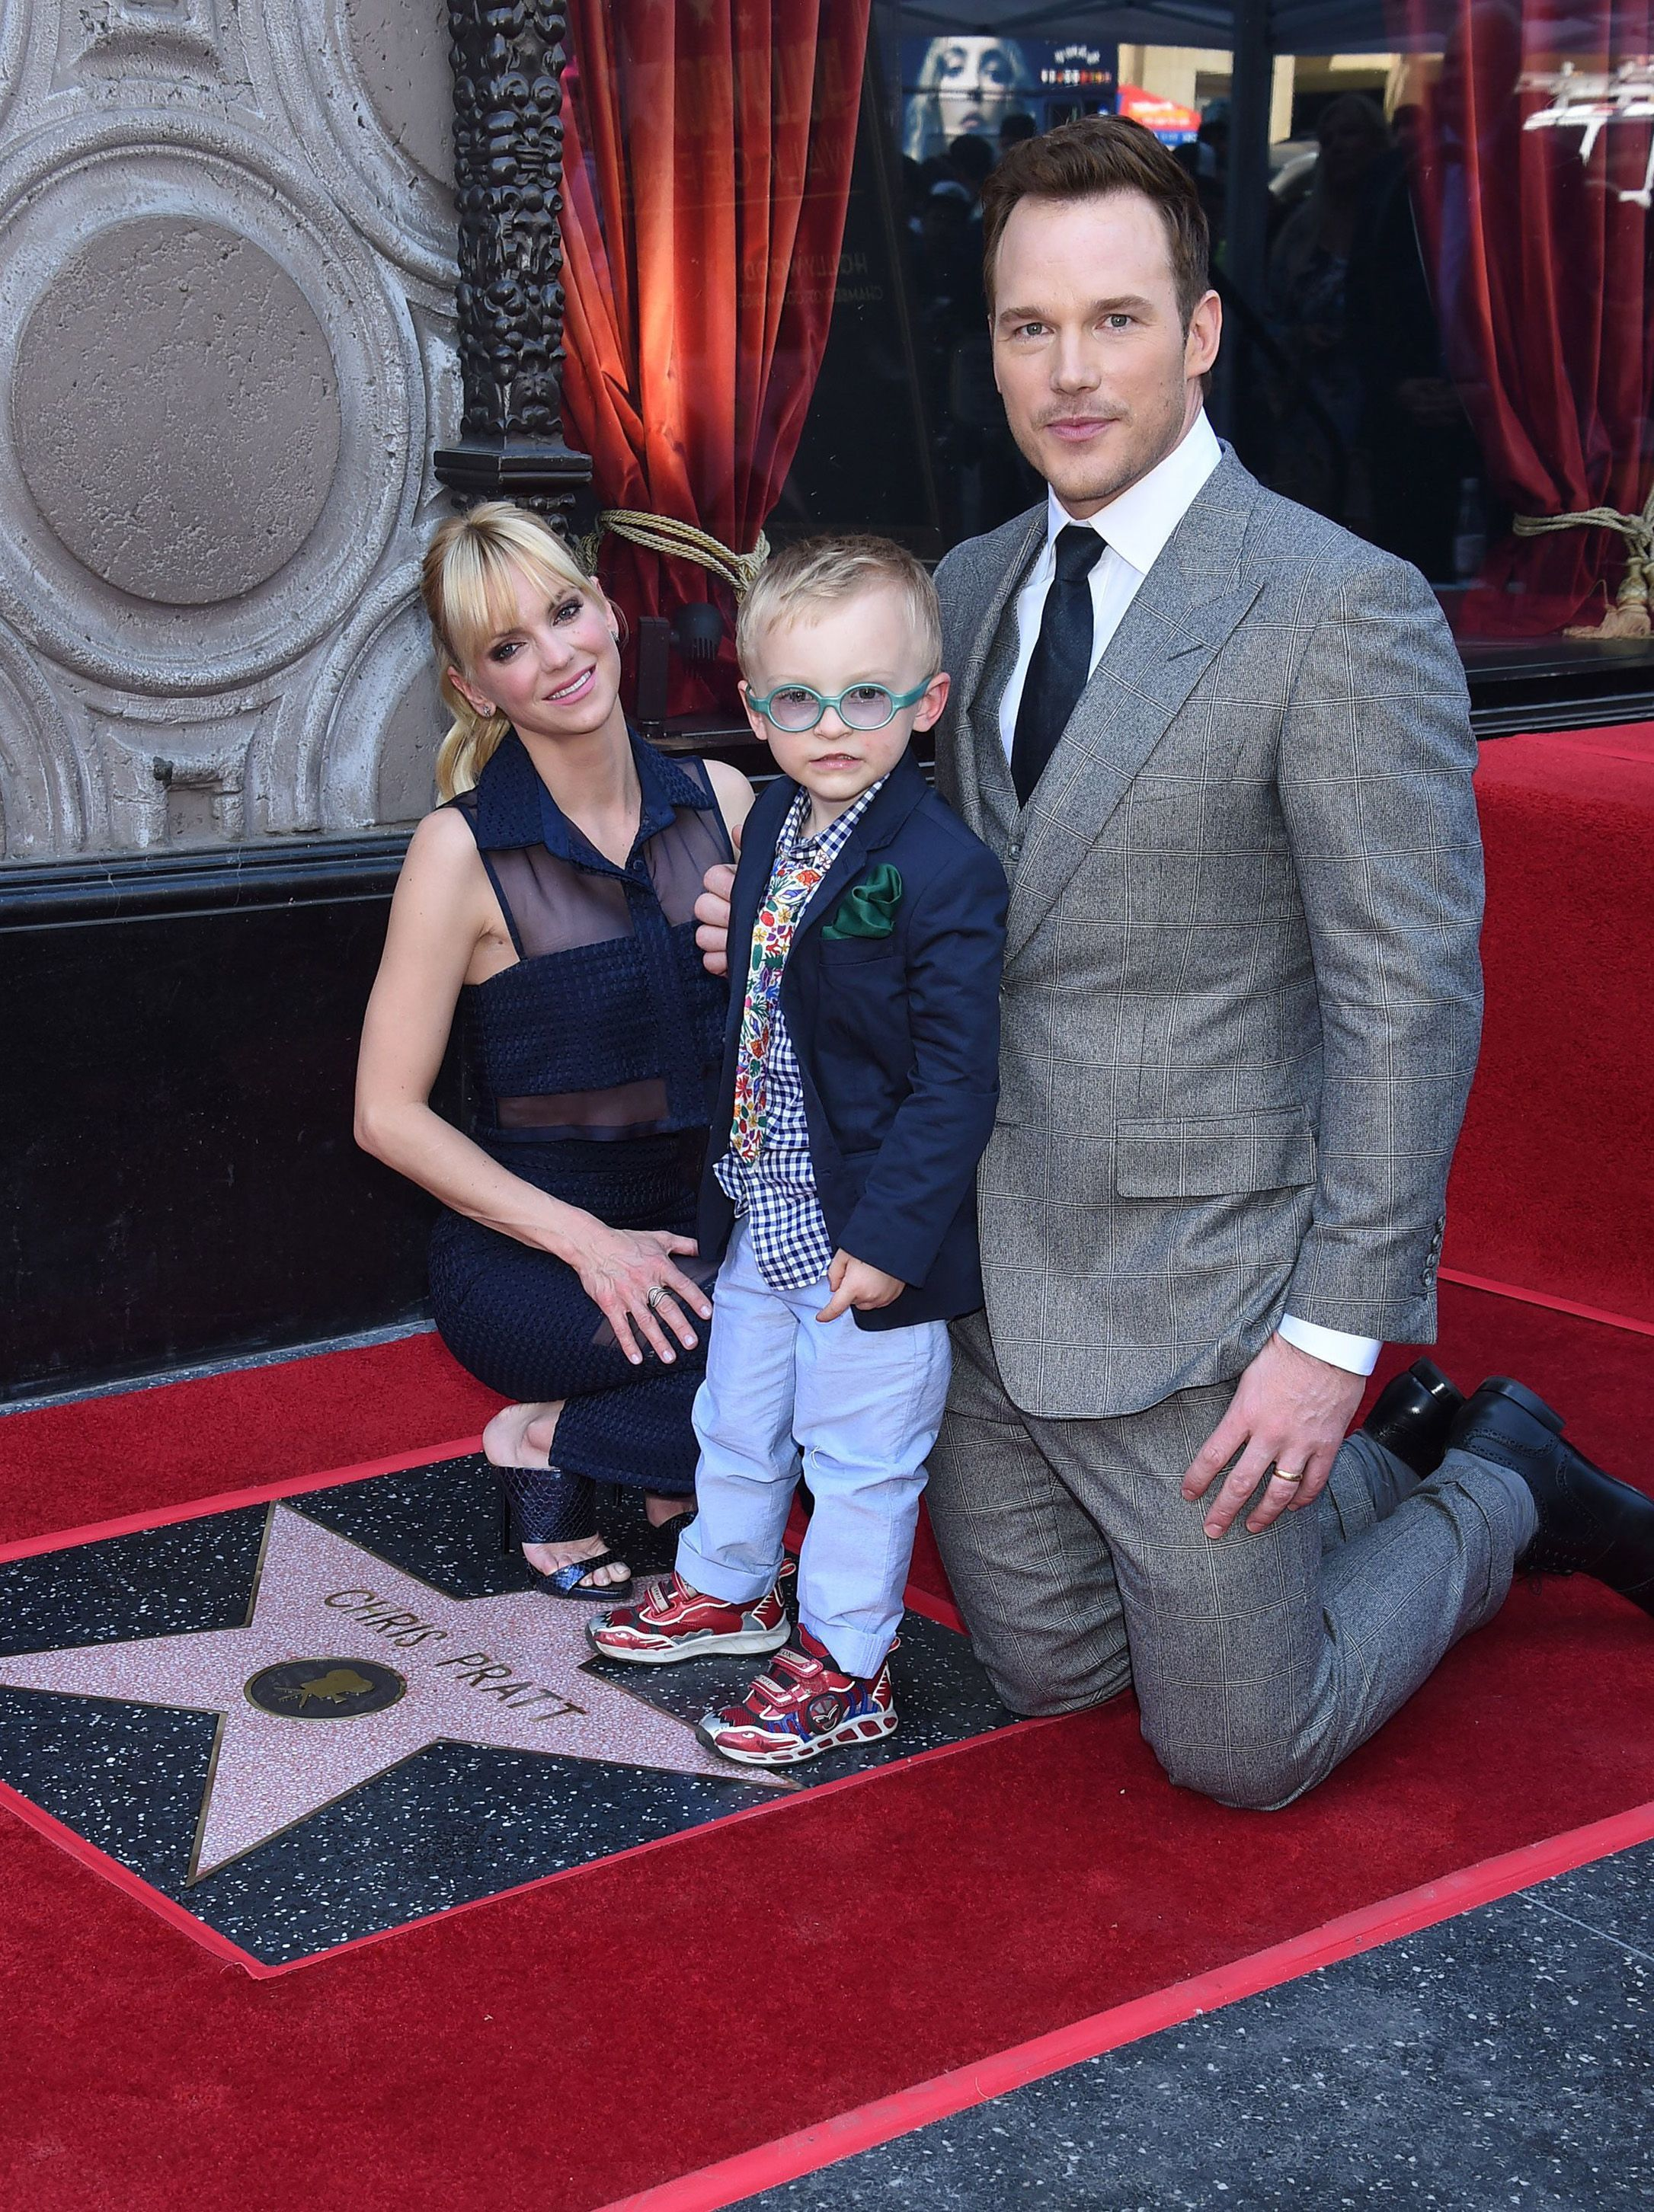 Anna Faris talks to Jimmy Kimmel and his wife about child health care